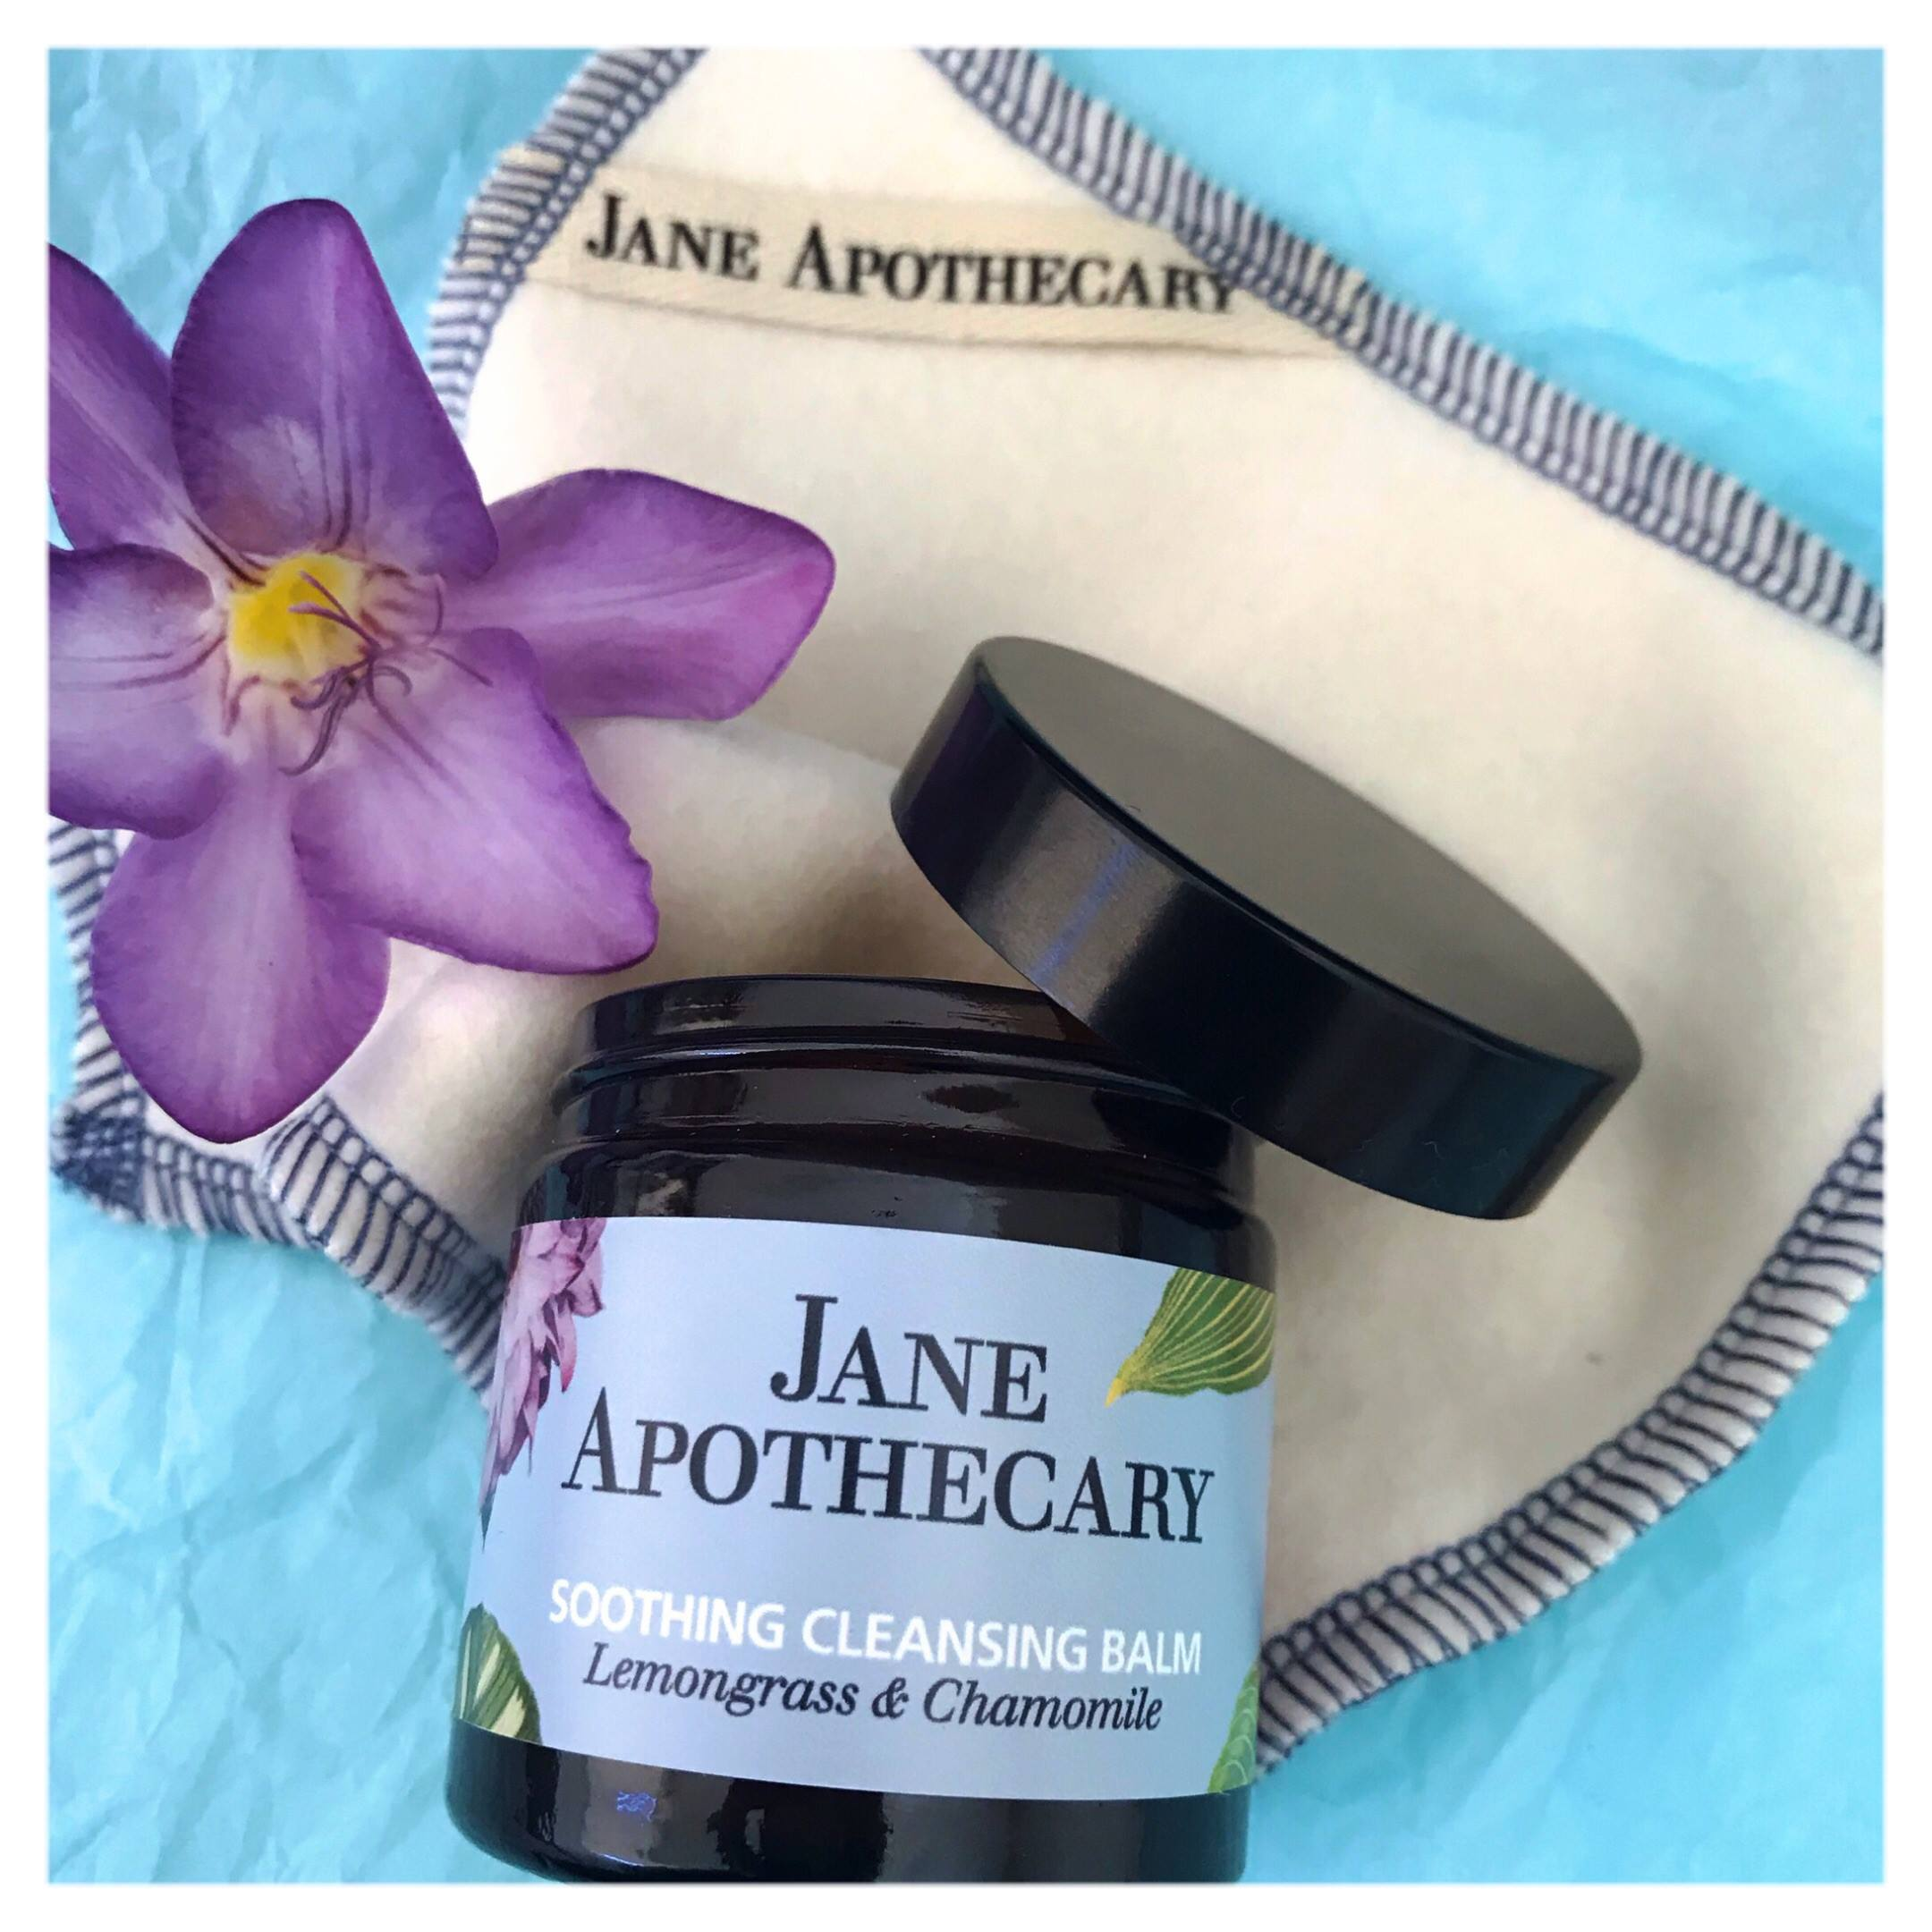 Jane Apothecary Cleanser Balm.jpg